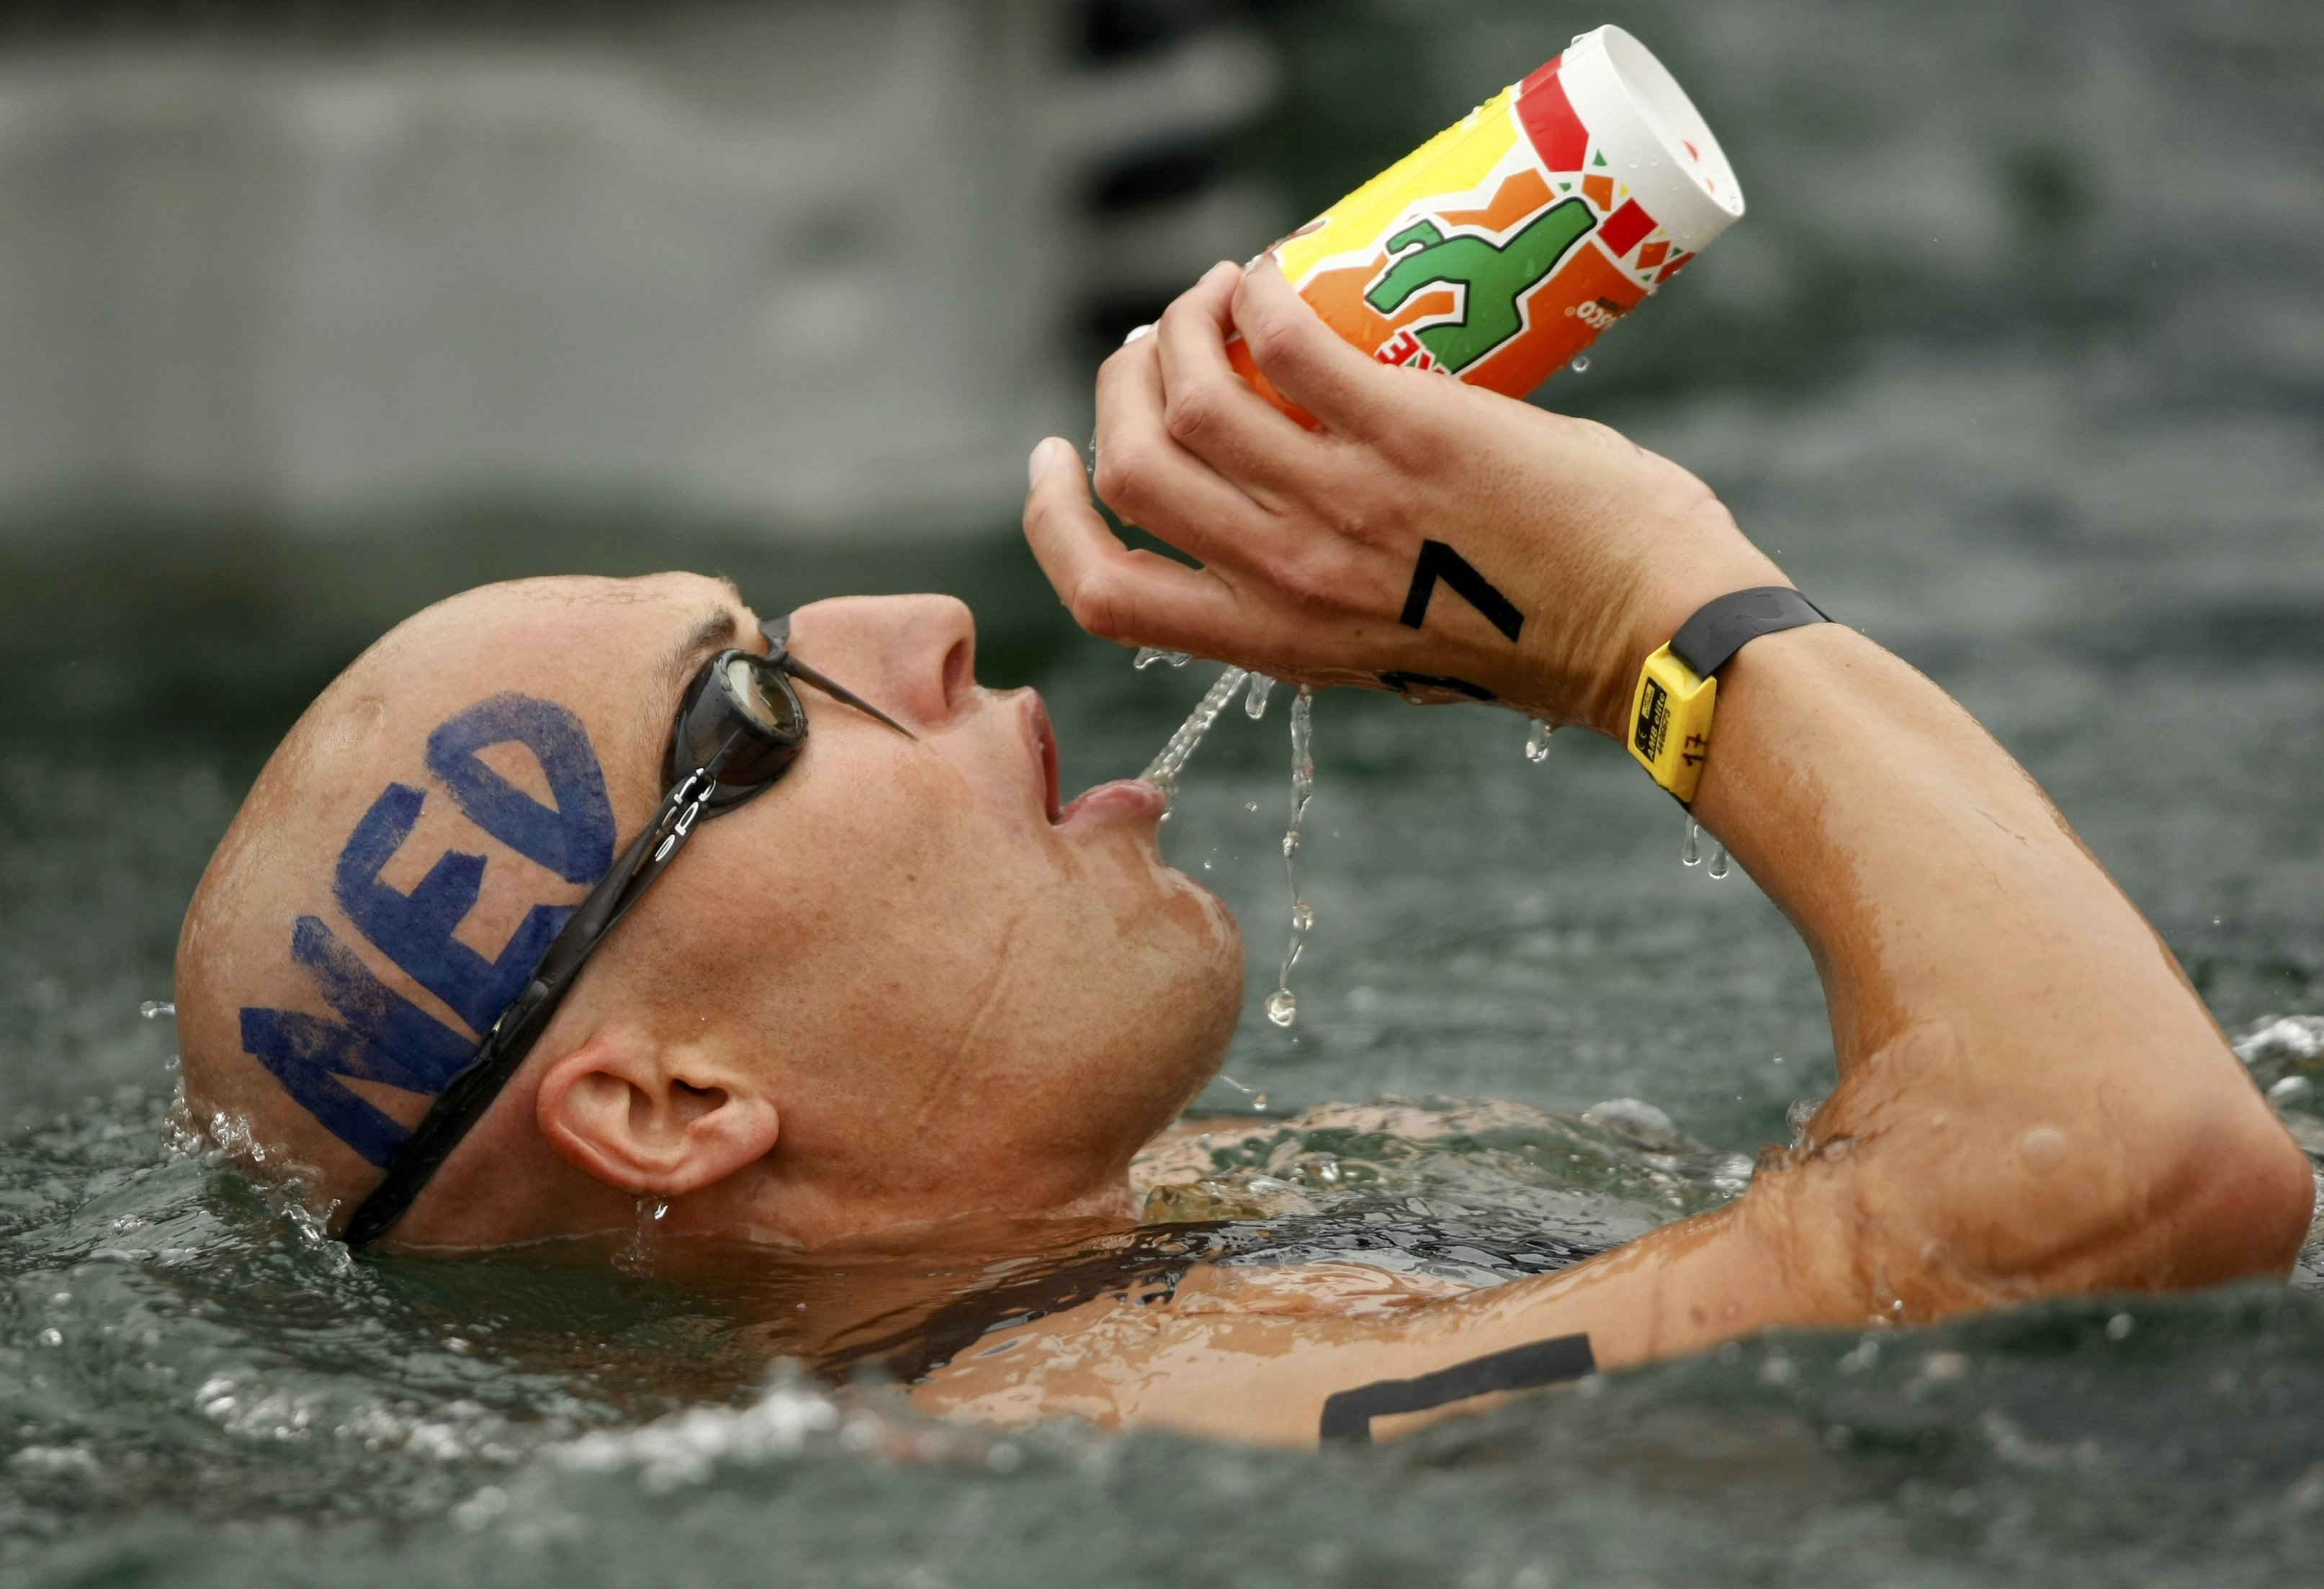 Maarten van der Weijden of the Netherlands drinks while competing in the men's marathon 10km swimming event at the Beijing 2008 Olympic Games in China...